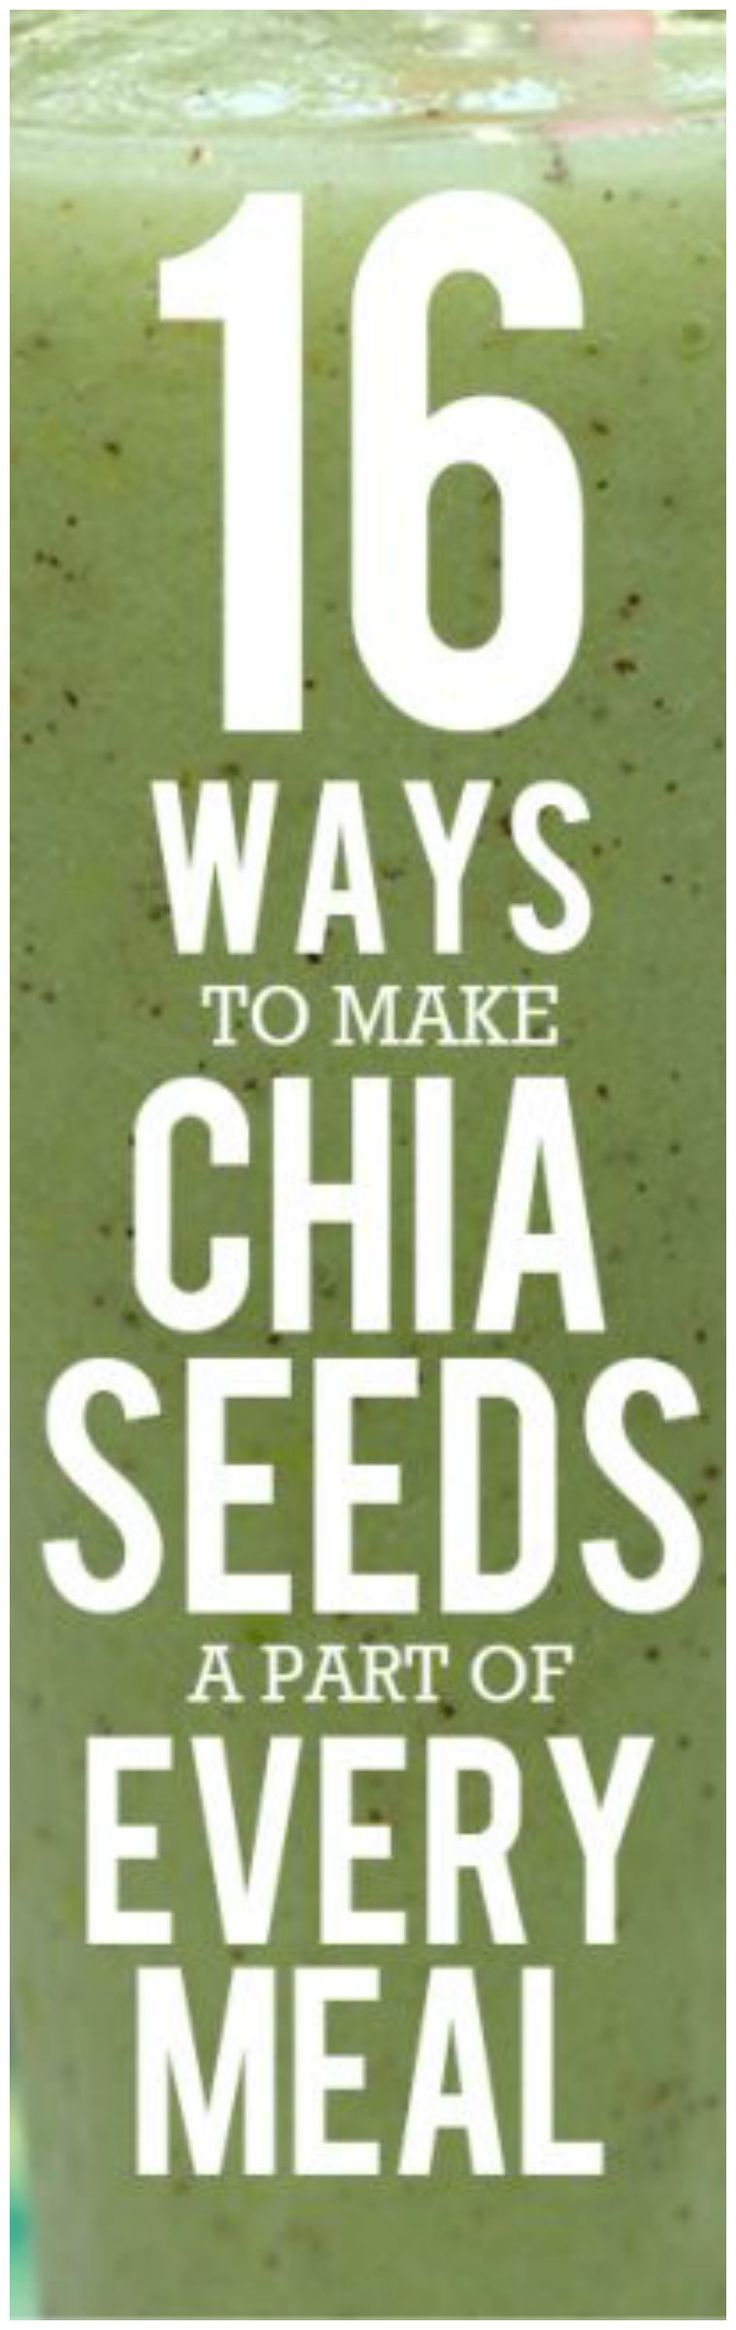 16 Chia Seed Recipes for Breakfast, Lunch, Dinner and Dessert. #superfood #mealplanning